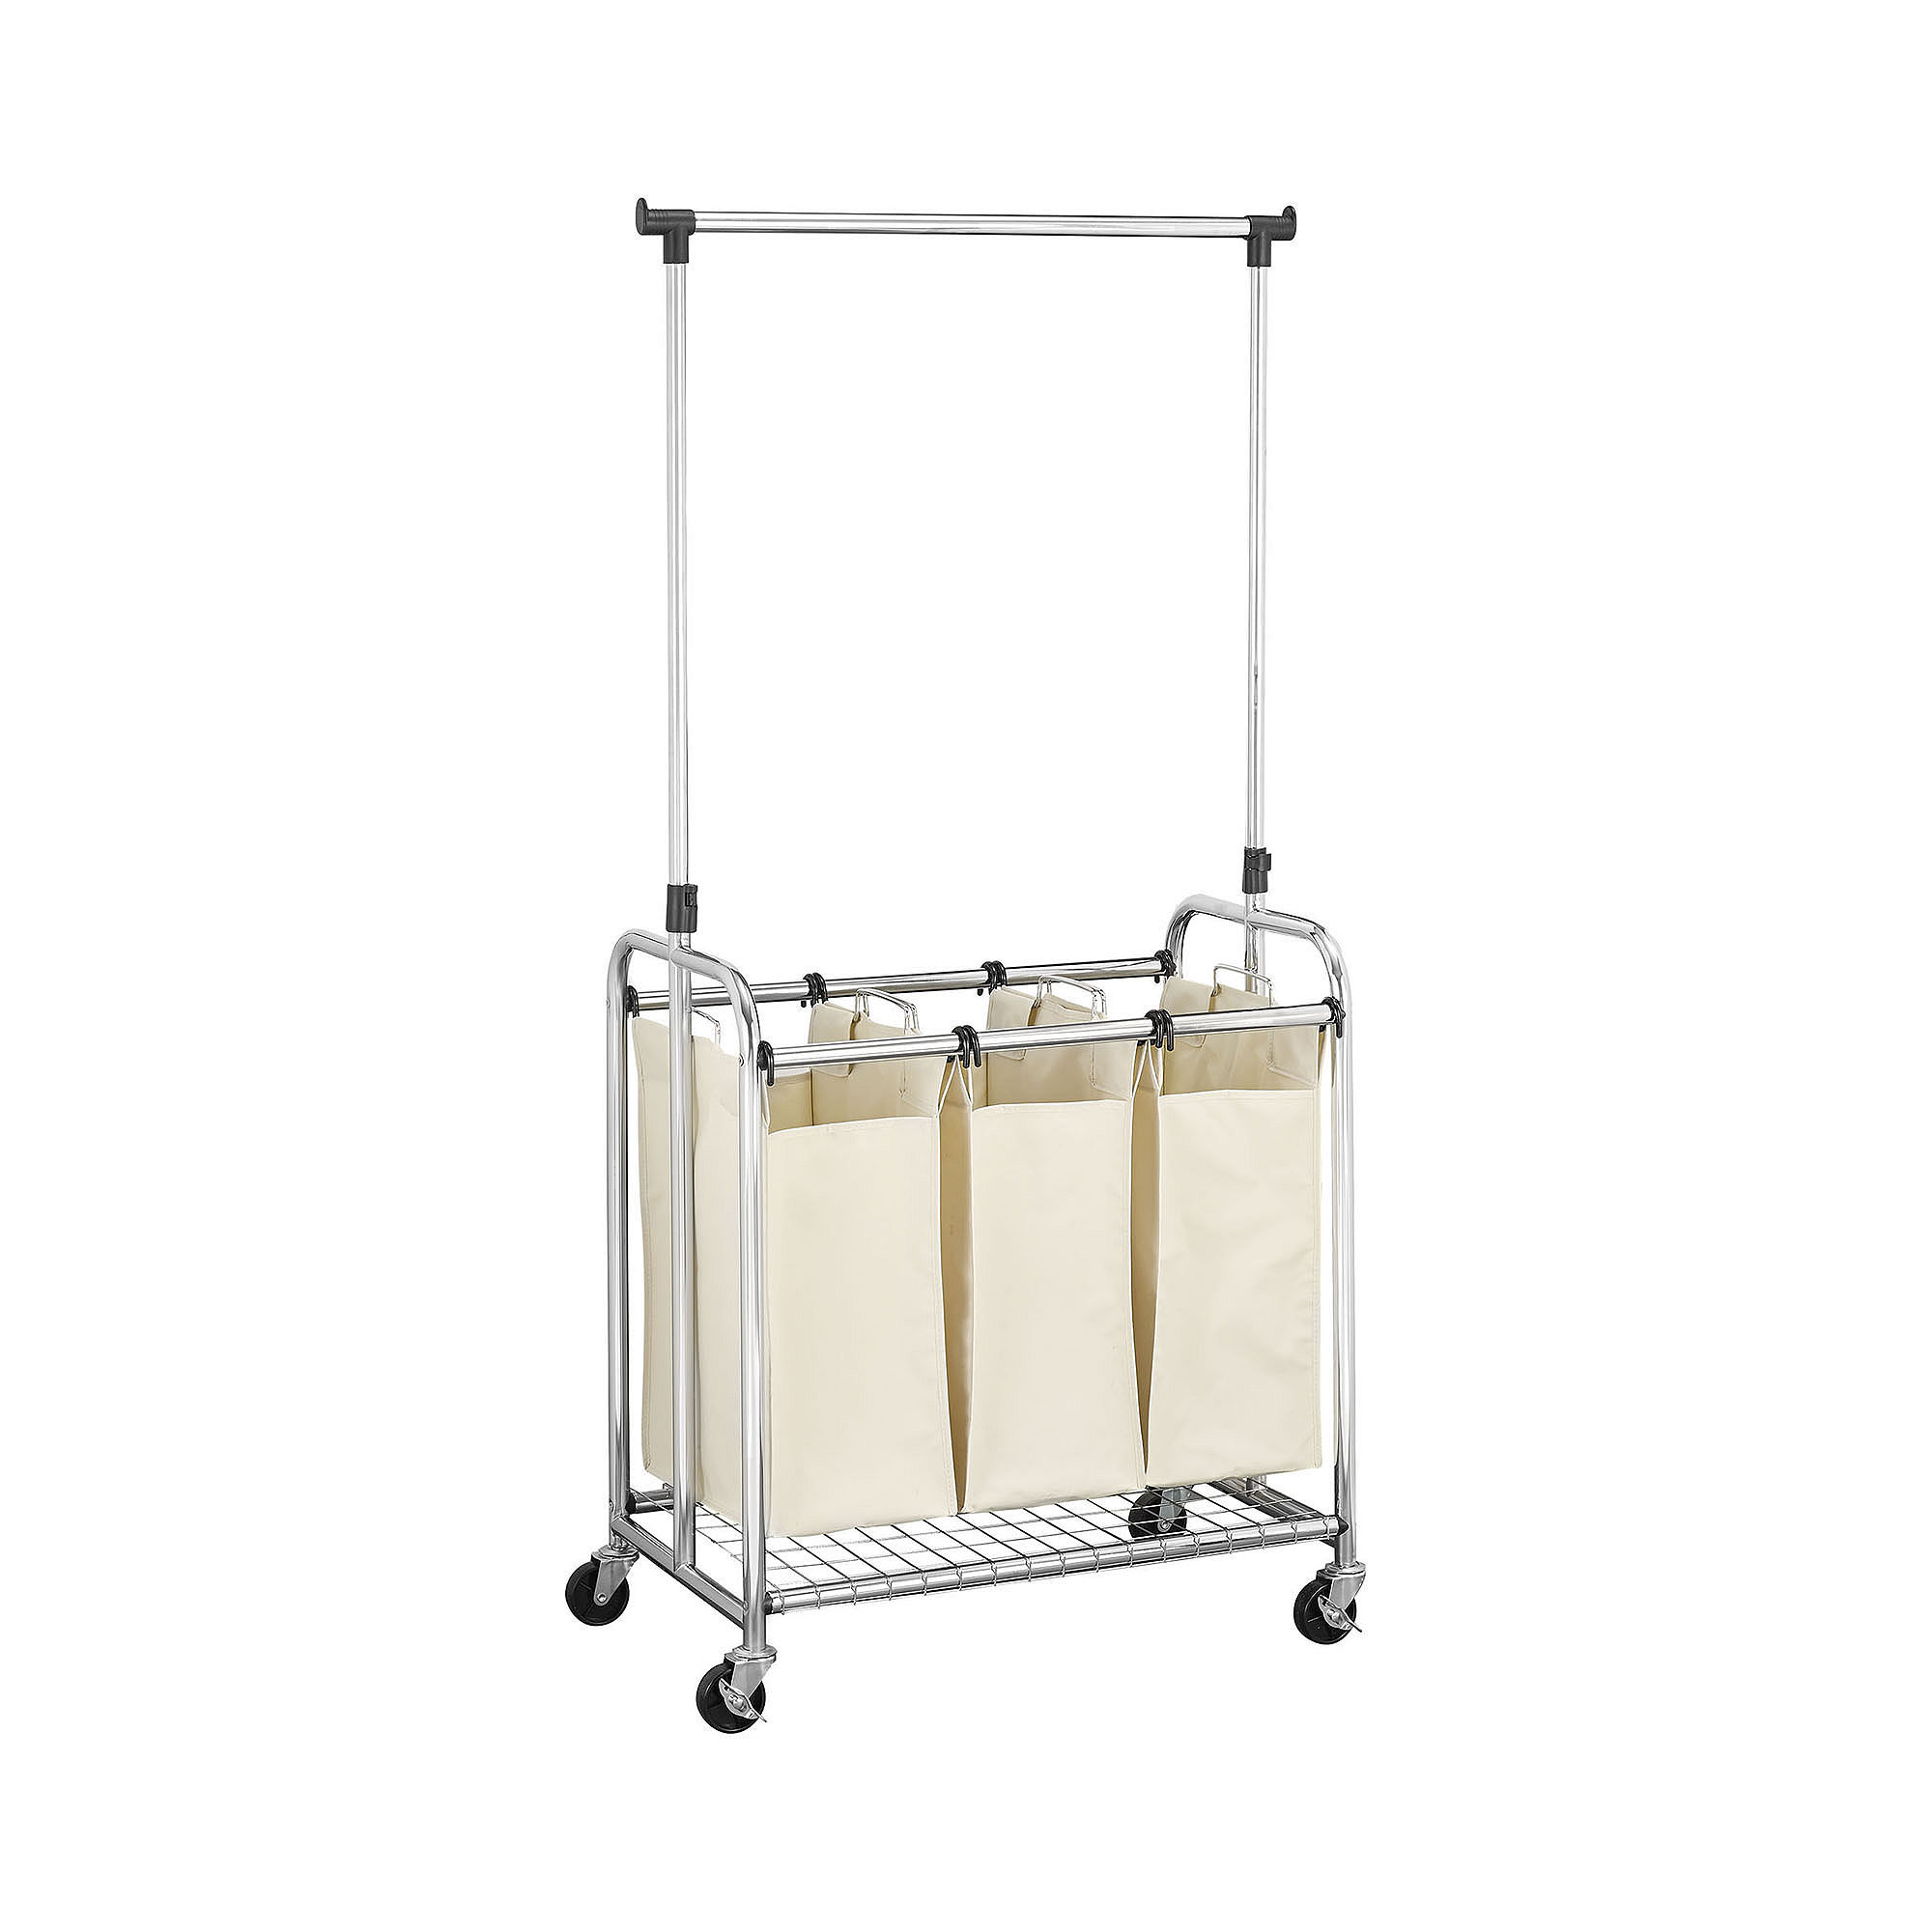 Household Essentials 3-Bag Laundry Sorter with Clothes Rack